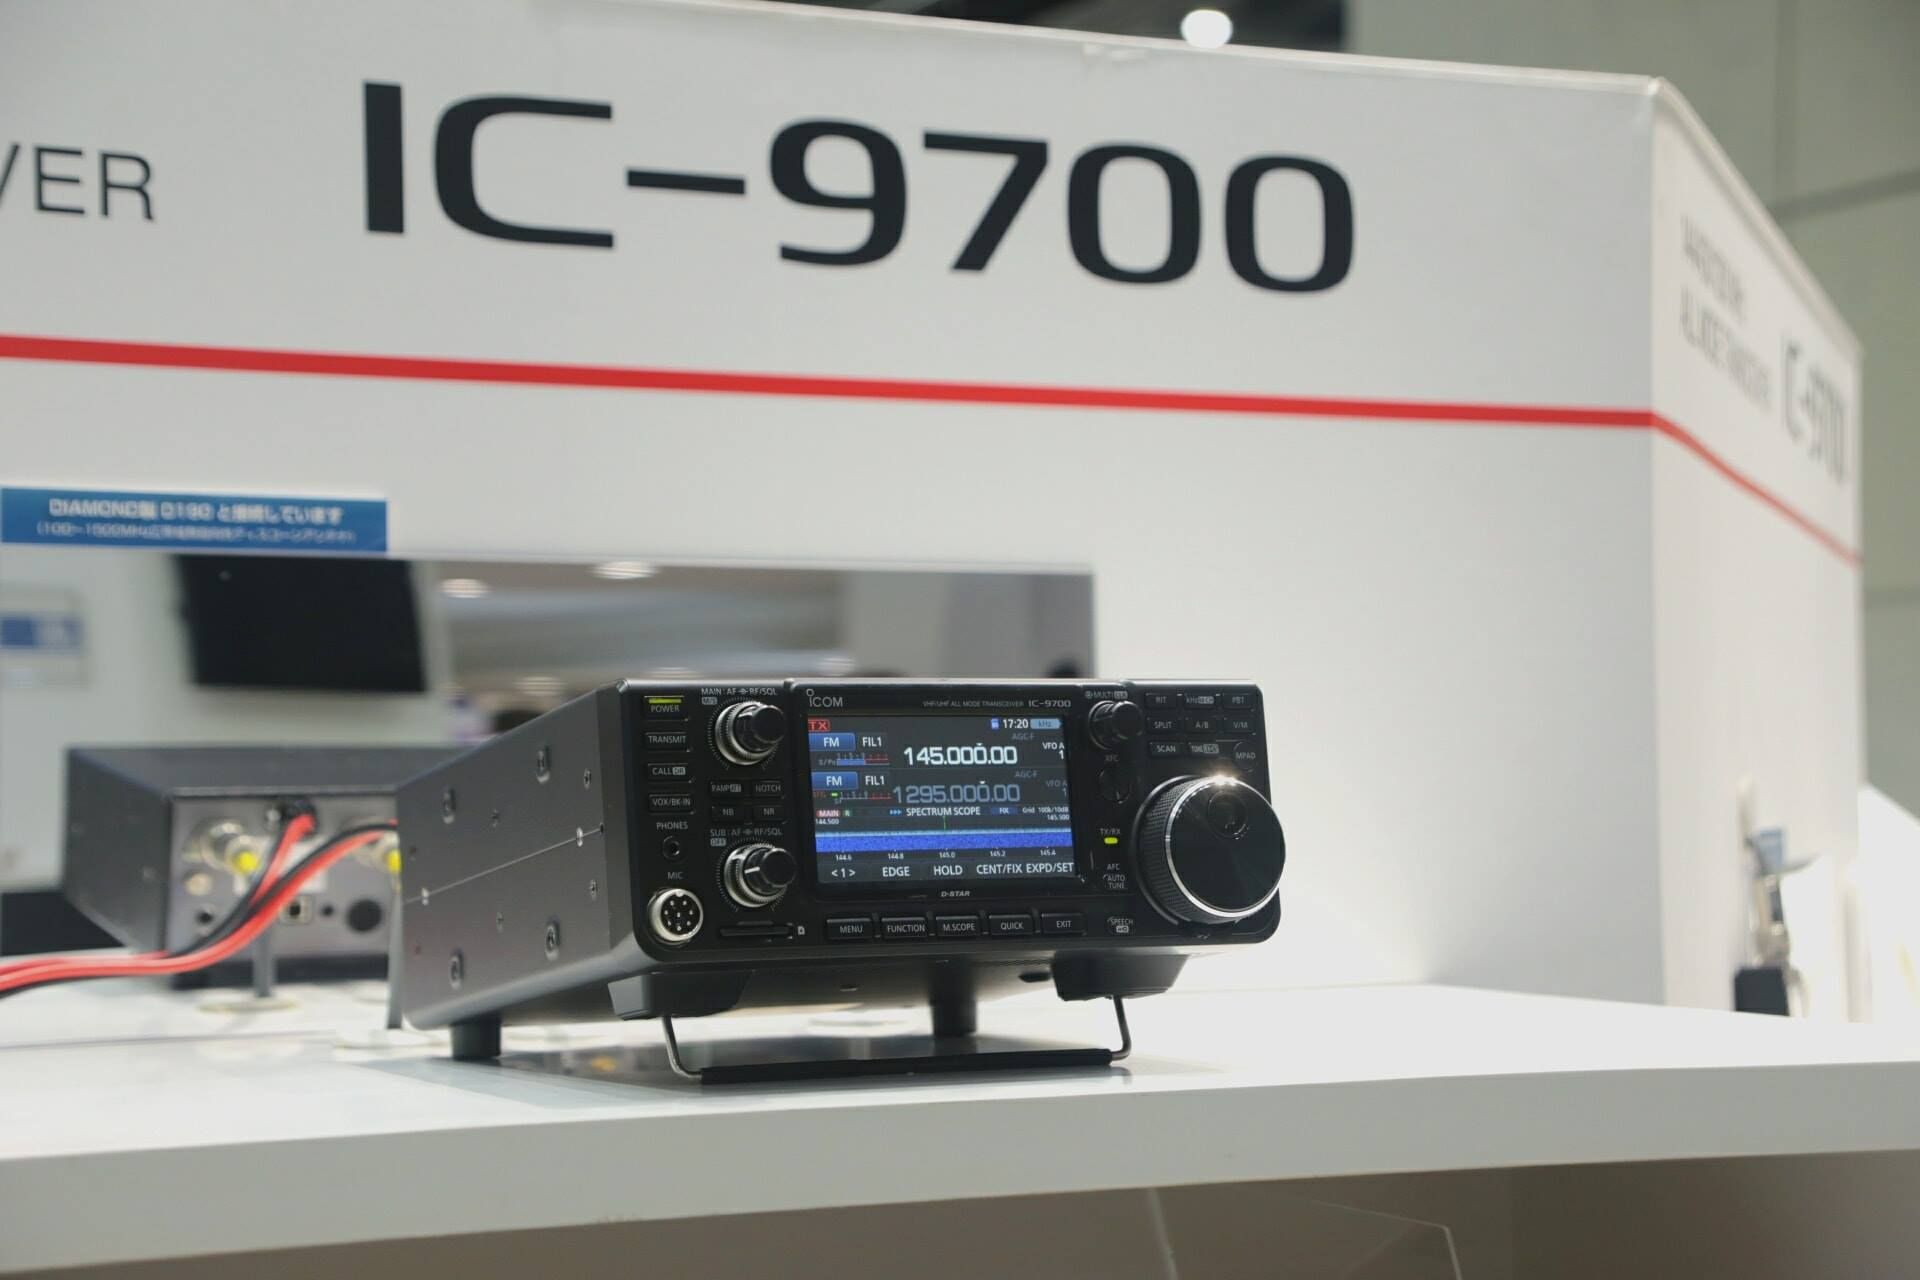 Working IC-9700 Shown In Tokyo